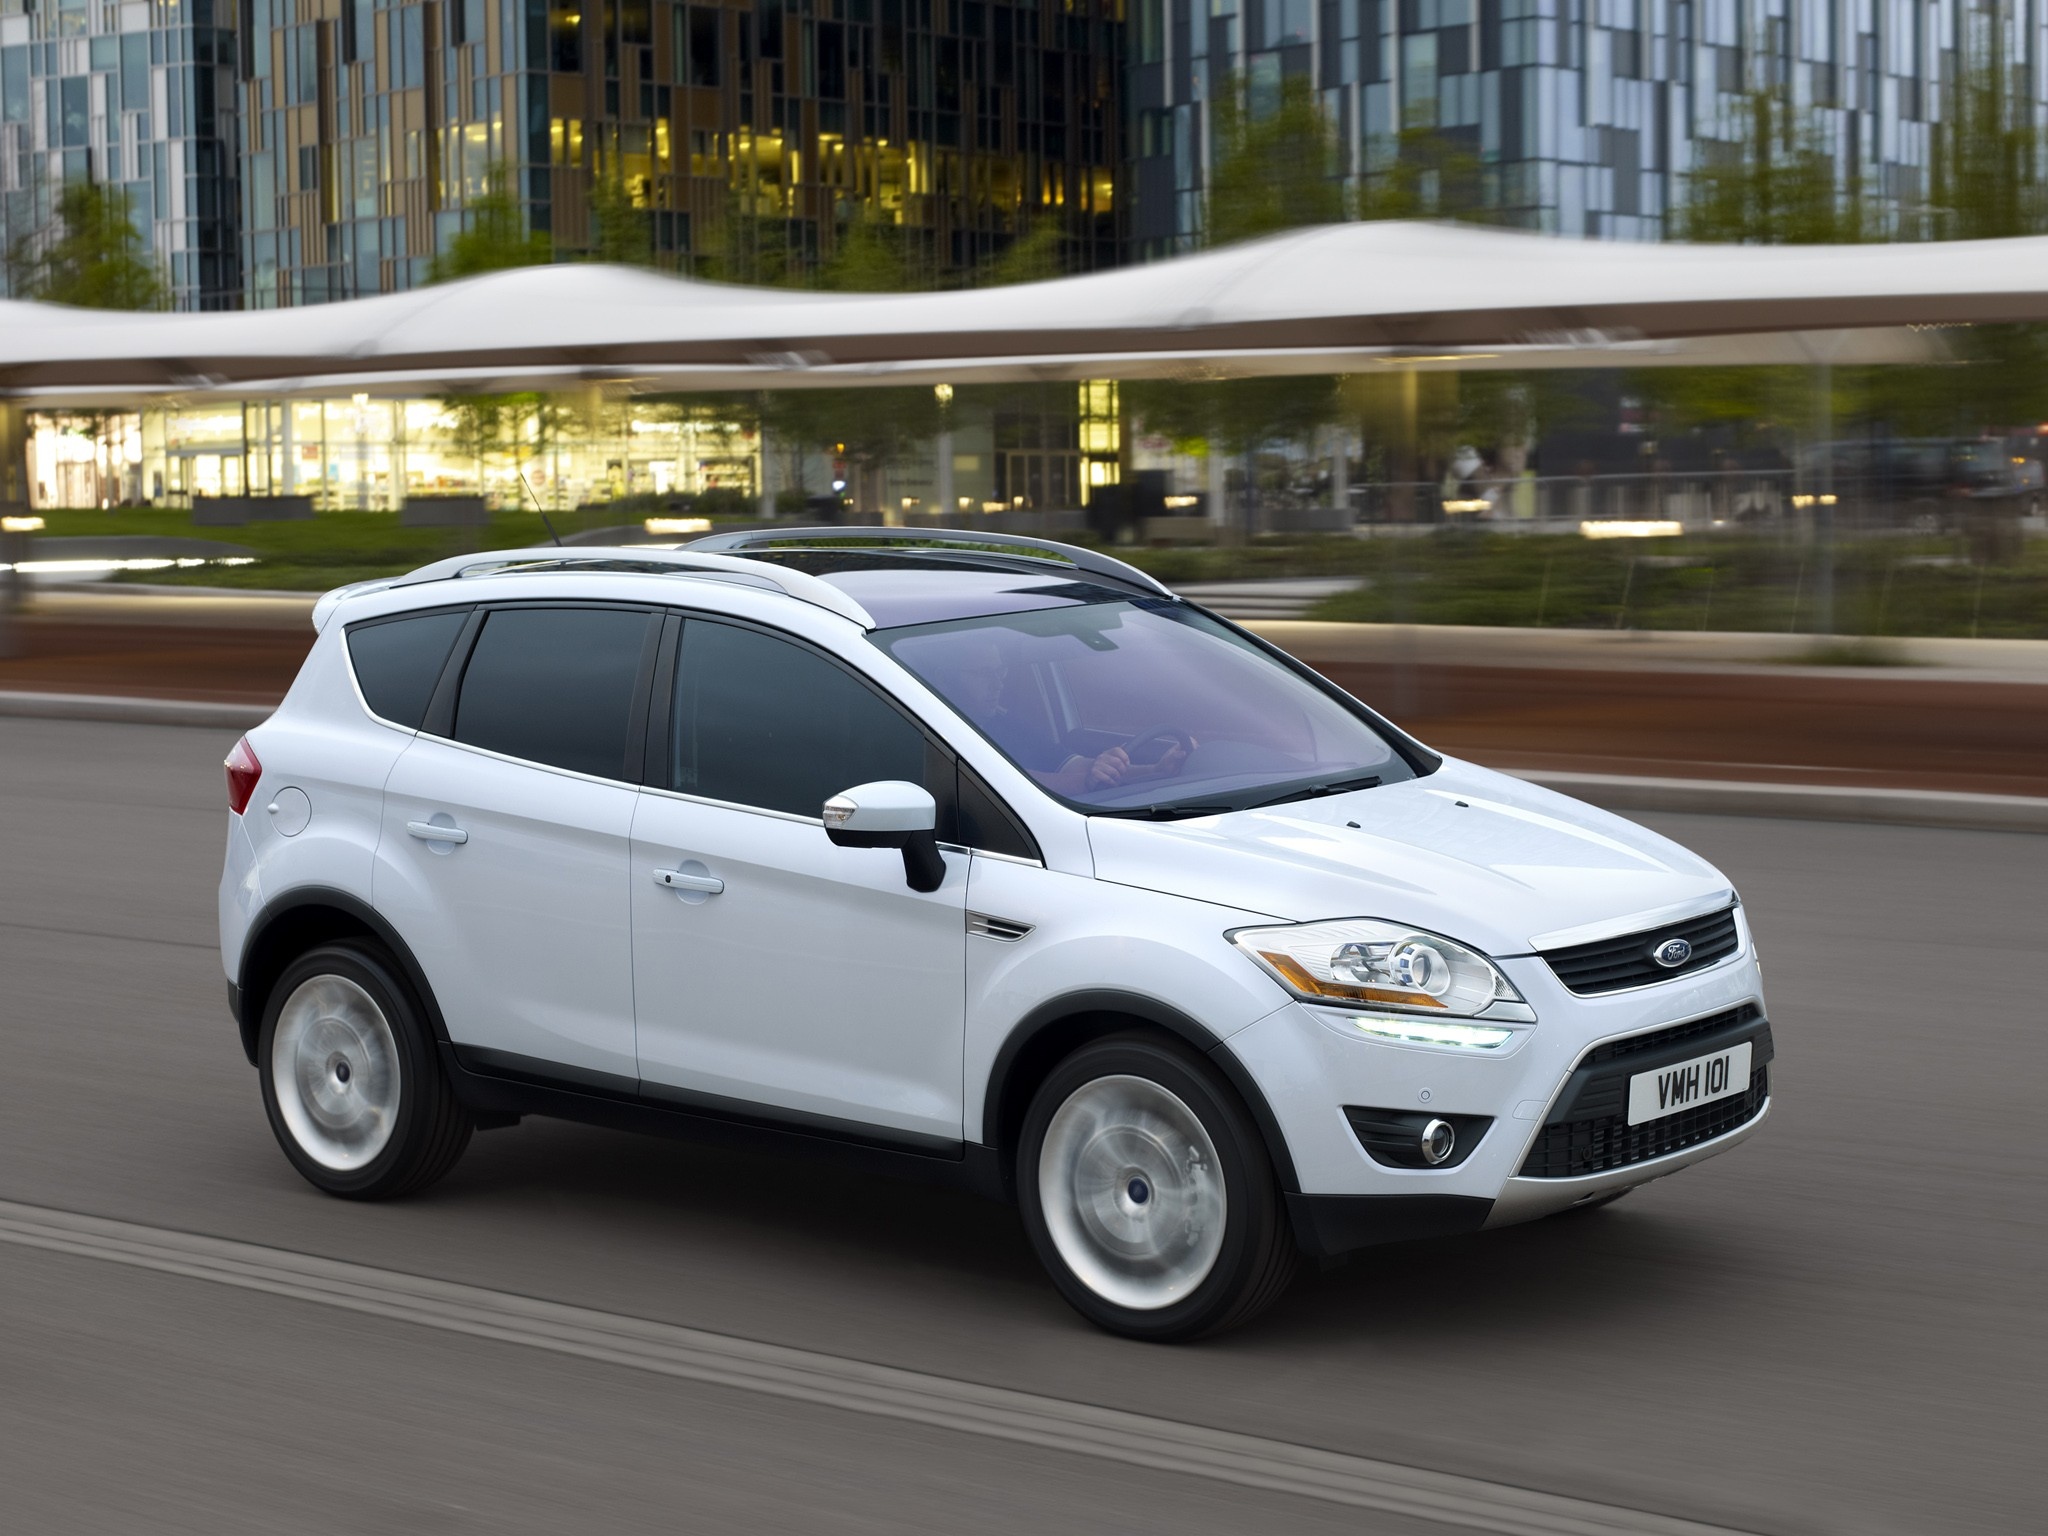 2010 Ford Focus Reviews >> FORD Kuga - 2008, 2009, 2010, 2011, 2012 - autoevolution